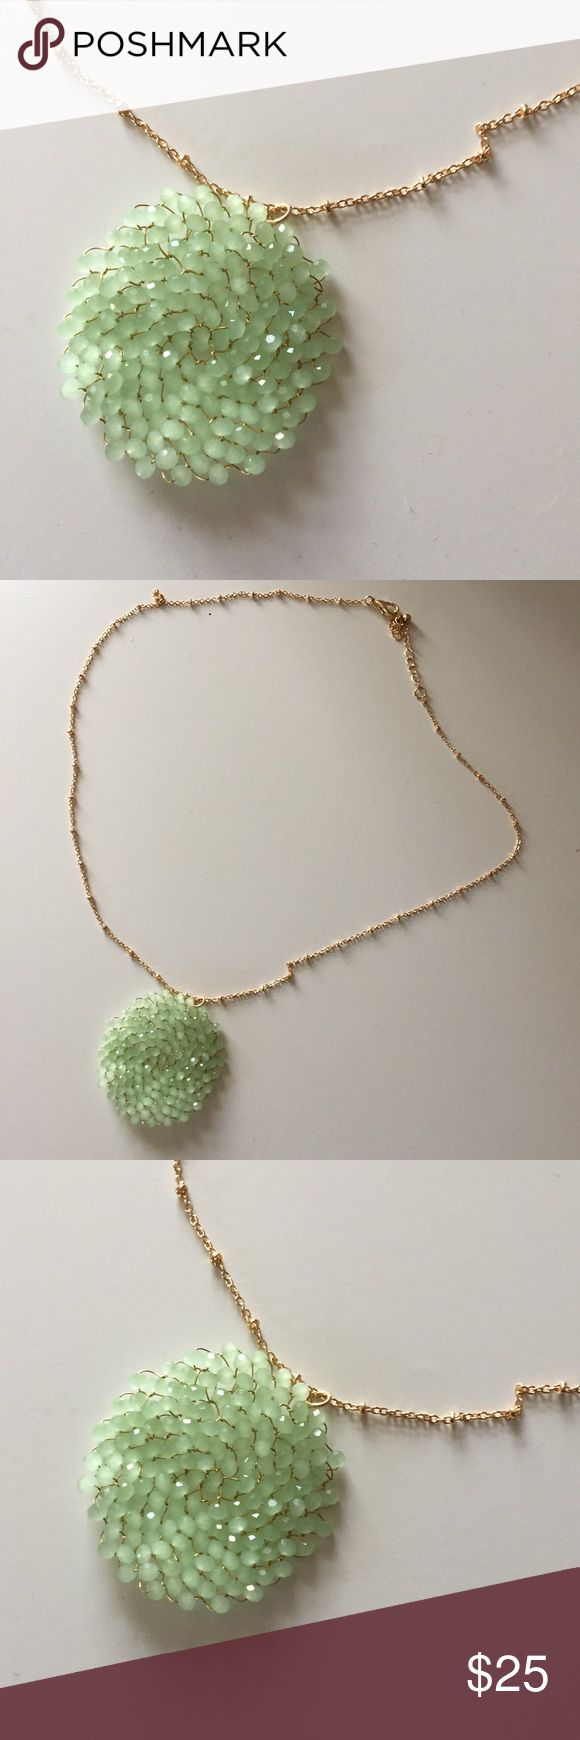 NYC Boutique Long Gold Chain with Pendant NWOT Dainty Gold chain(not real gold) with round pendant bought at a Boutique in NYC. Never worn. Pendant is delicate with light green beads. Jewelry Necklaces